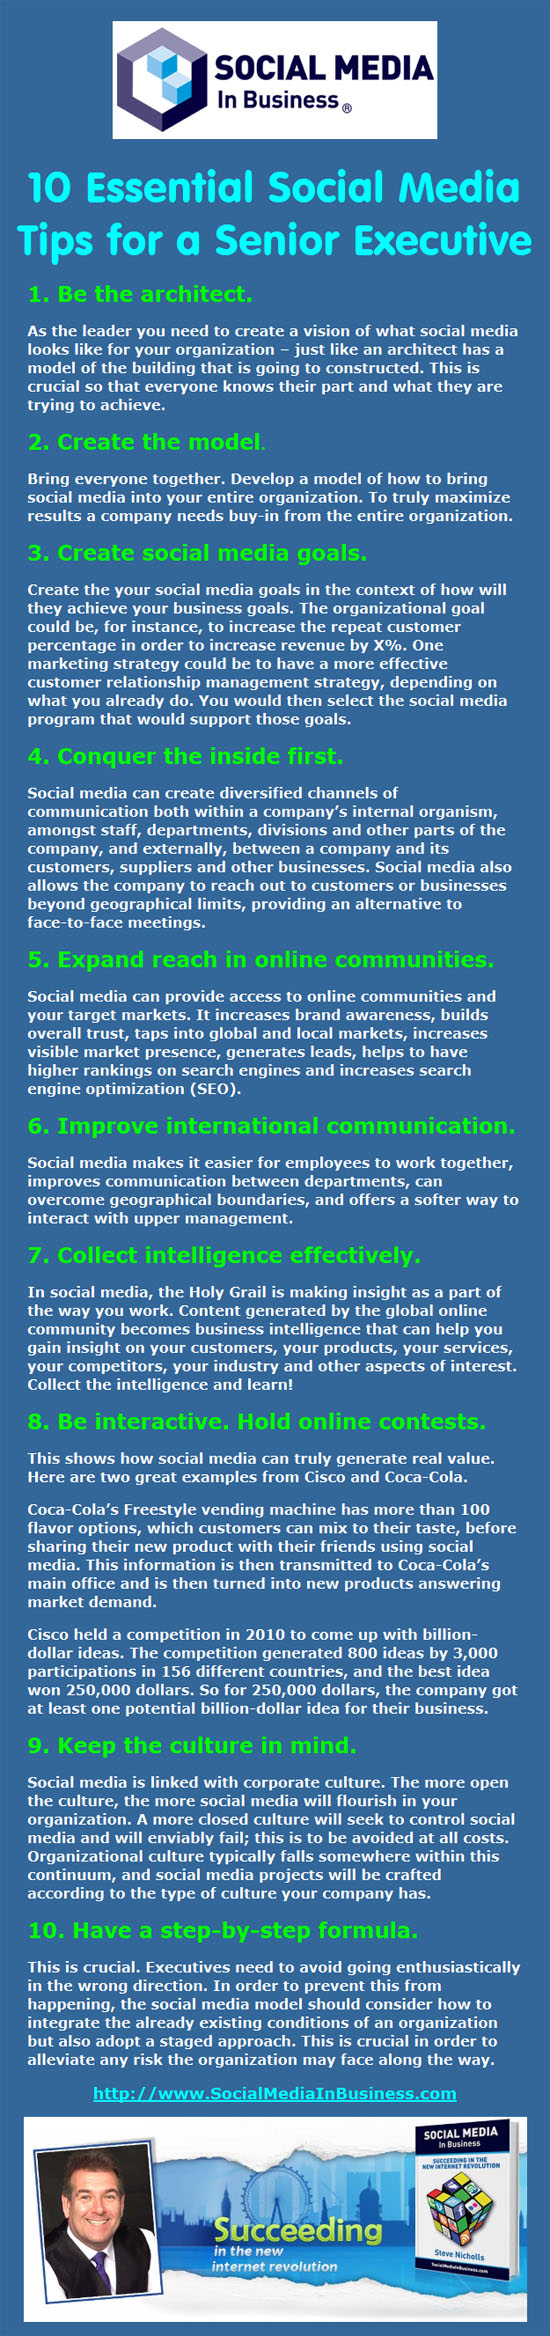 social media in business infographic